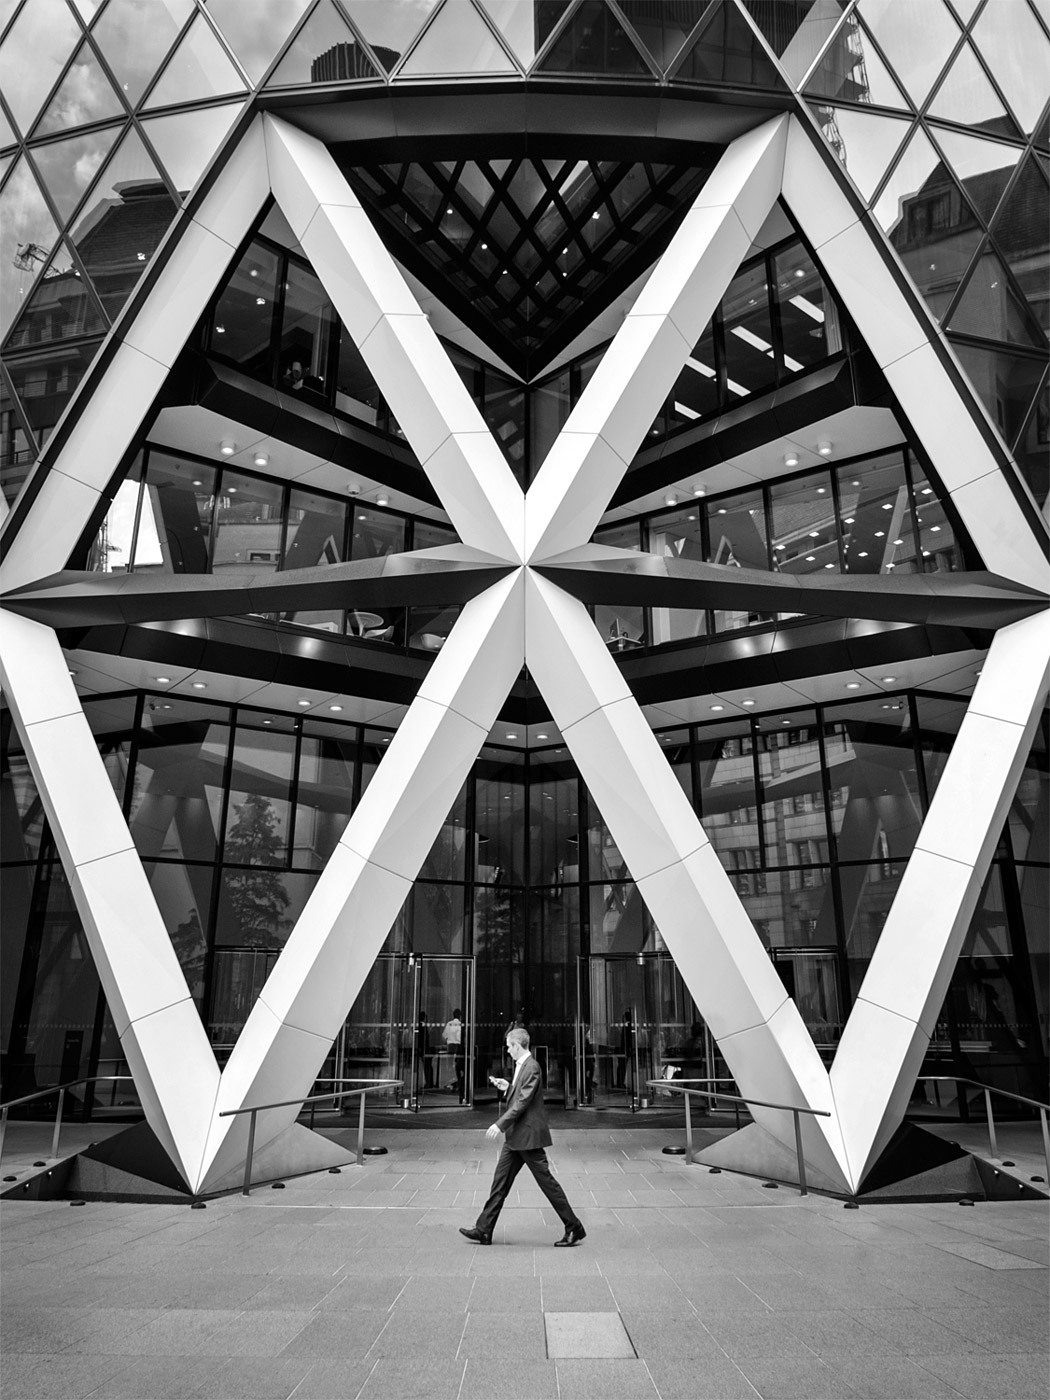 30 St Mary Axe, London. Architect: Norman Foster. © Edward Neumann / EMCN